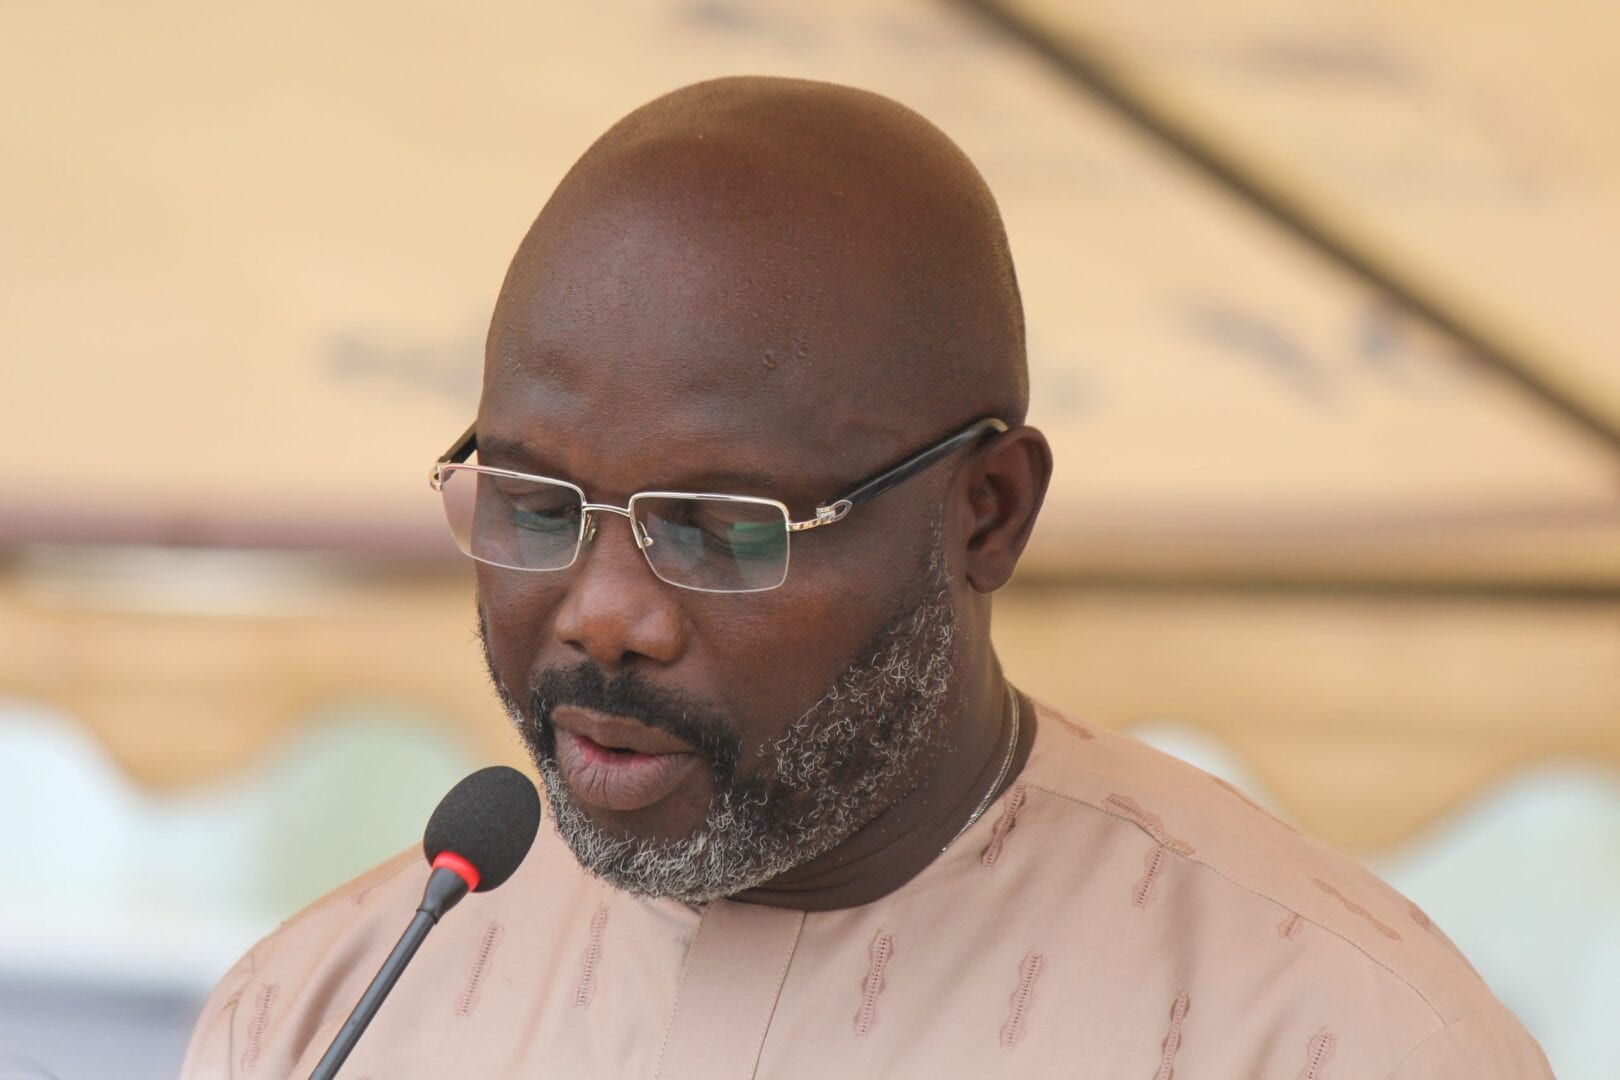 President Weah To Name Shame Poor Performing Officials Hails Public Works As Outstanding Ministry Under Two Years Of His Administration Kmtv News